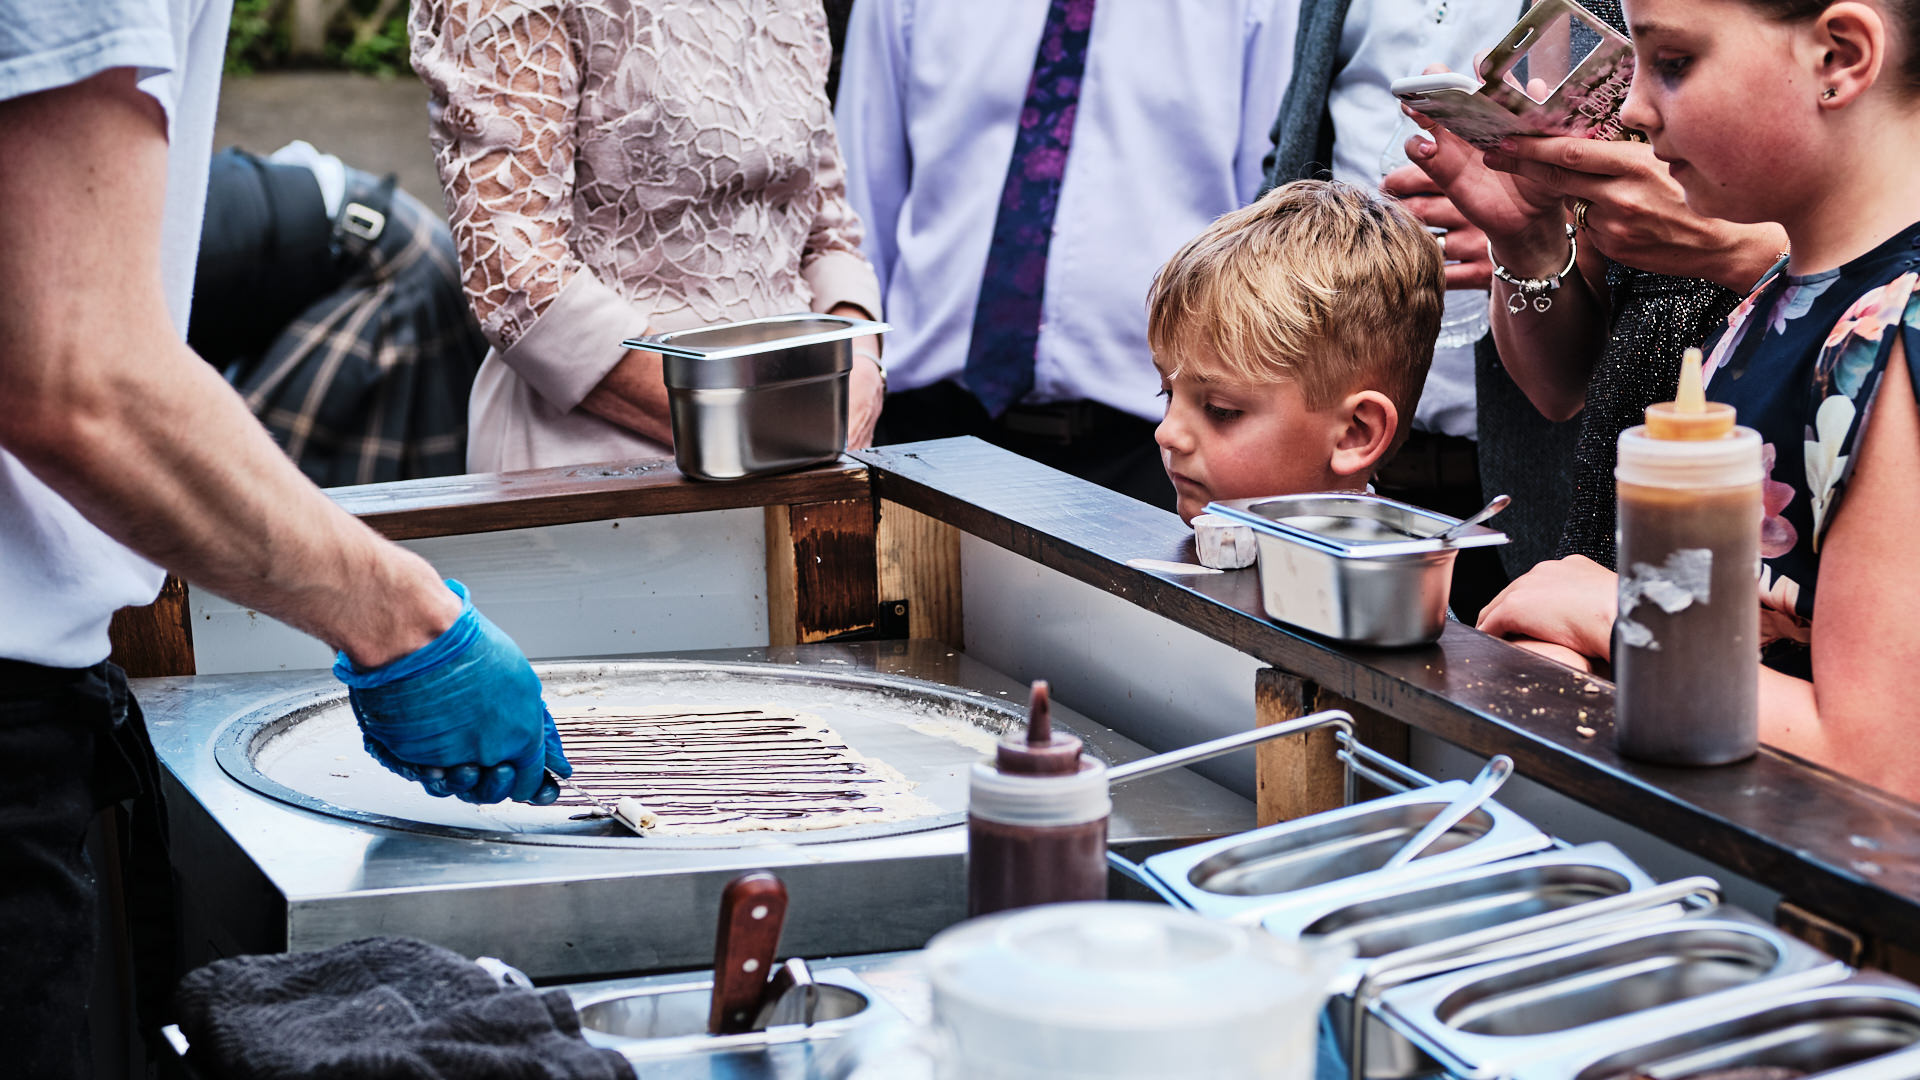 colour photograph of children watching a chef make crepes as apart of a wedding breakfast